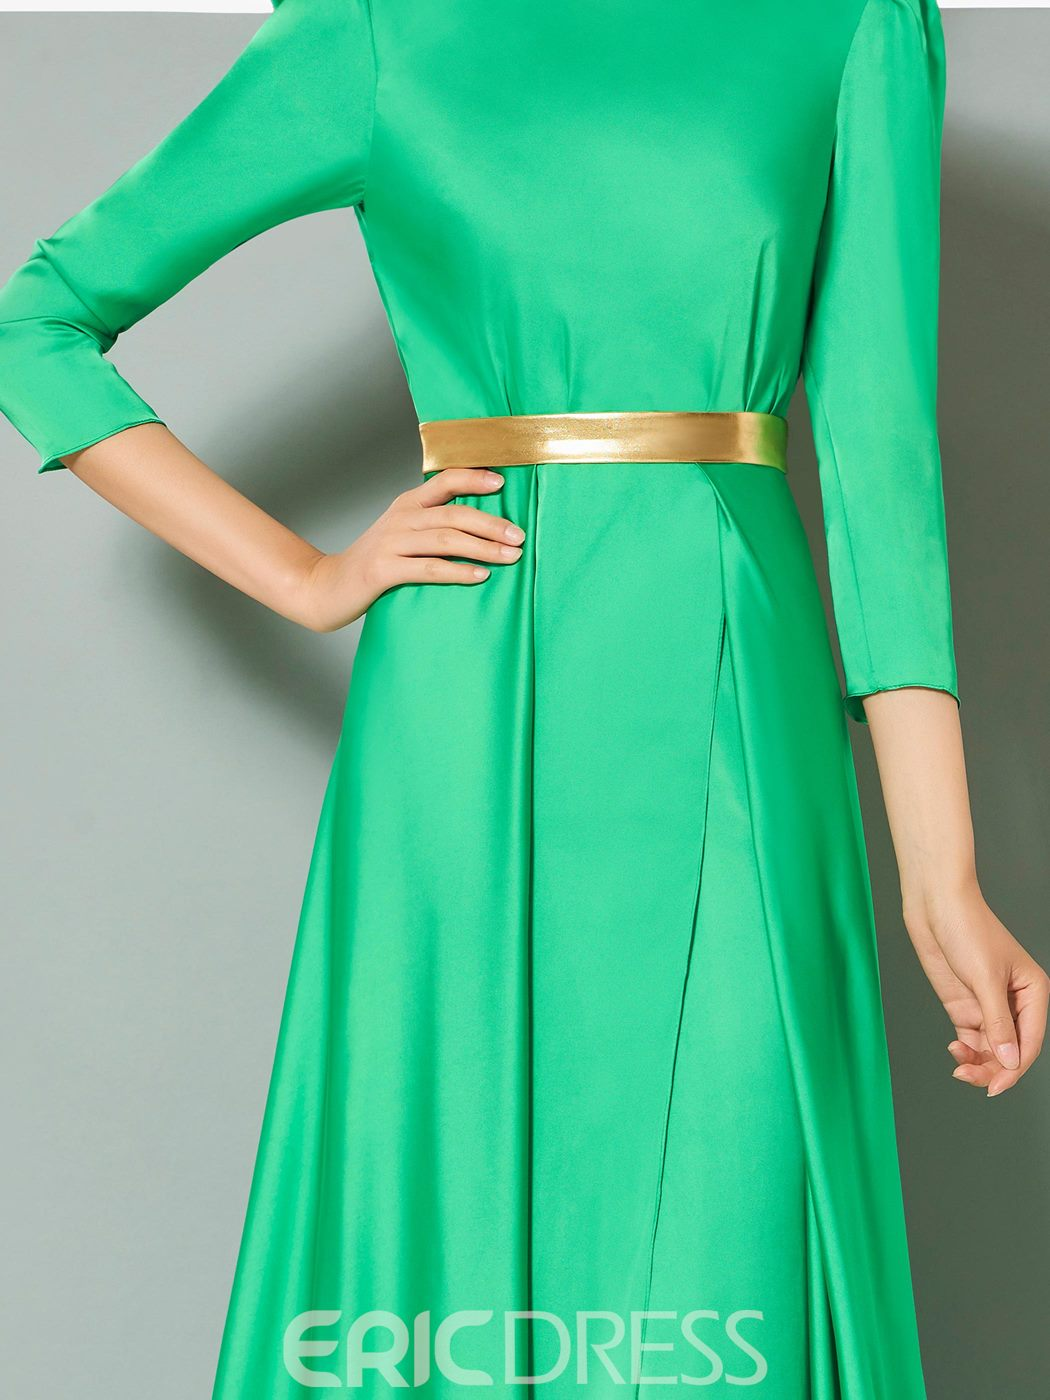 Ericdress A Line 3/4 Sleeve Side Slit Long Evening Dress